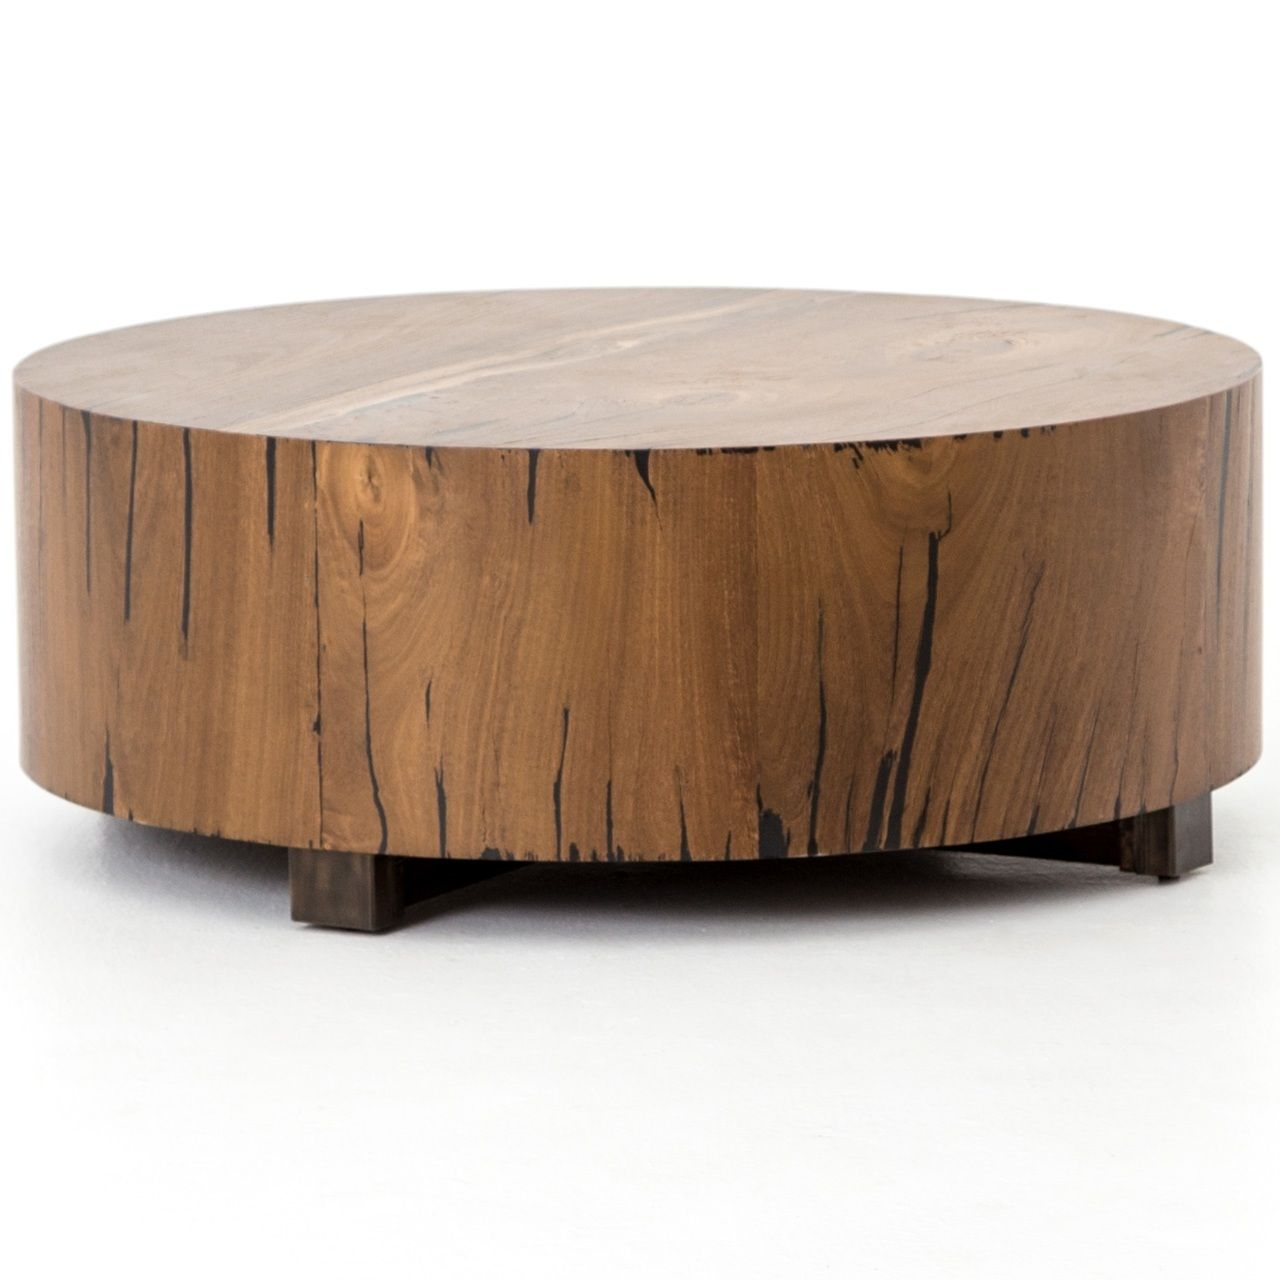 Hudson Round Natural Wood Block Coffee Table Natural Wood Coffee